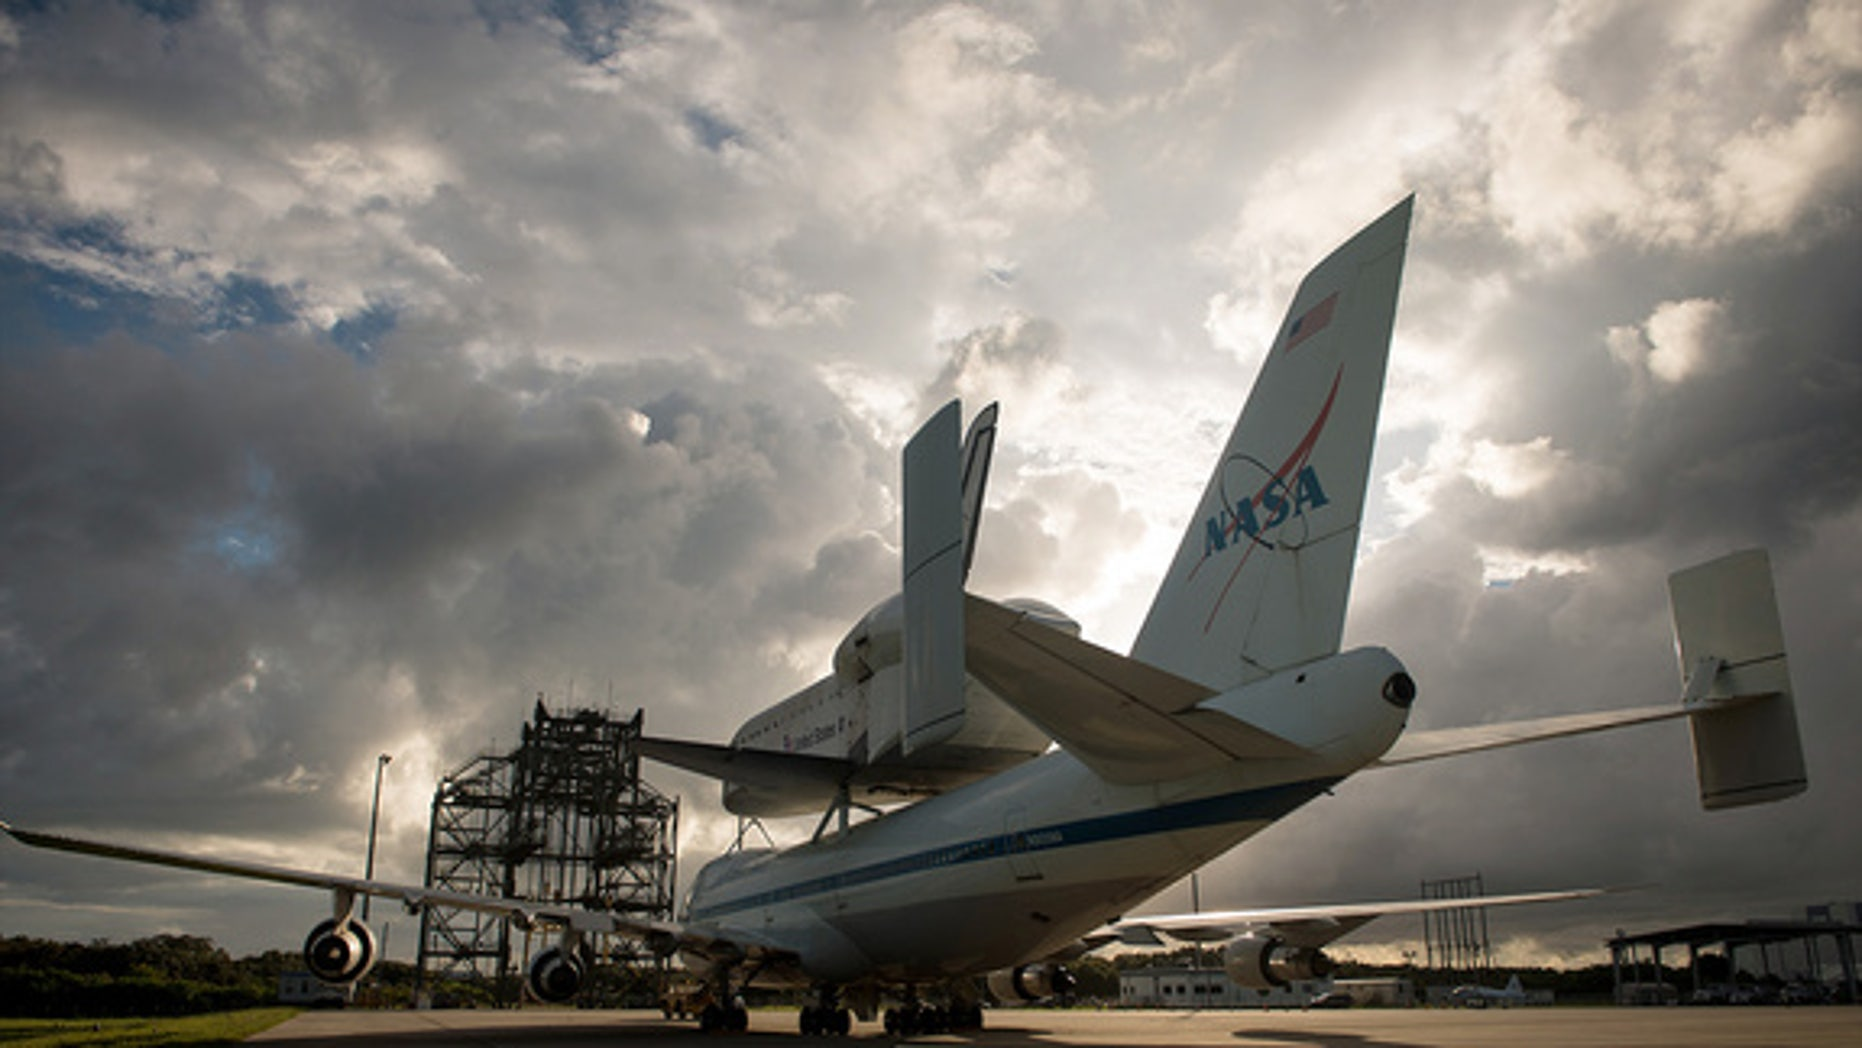 Space shuttle Endeavour, atop NASA's Shuttle Carrier Aircraft, or SCA, is seen at the Shuttle Landing Facility at NASA's Kennedy Space Center on Monday, Sept. 17, 2012.